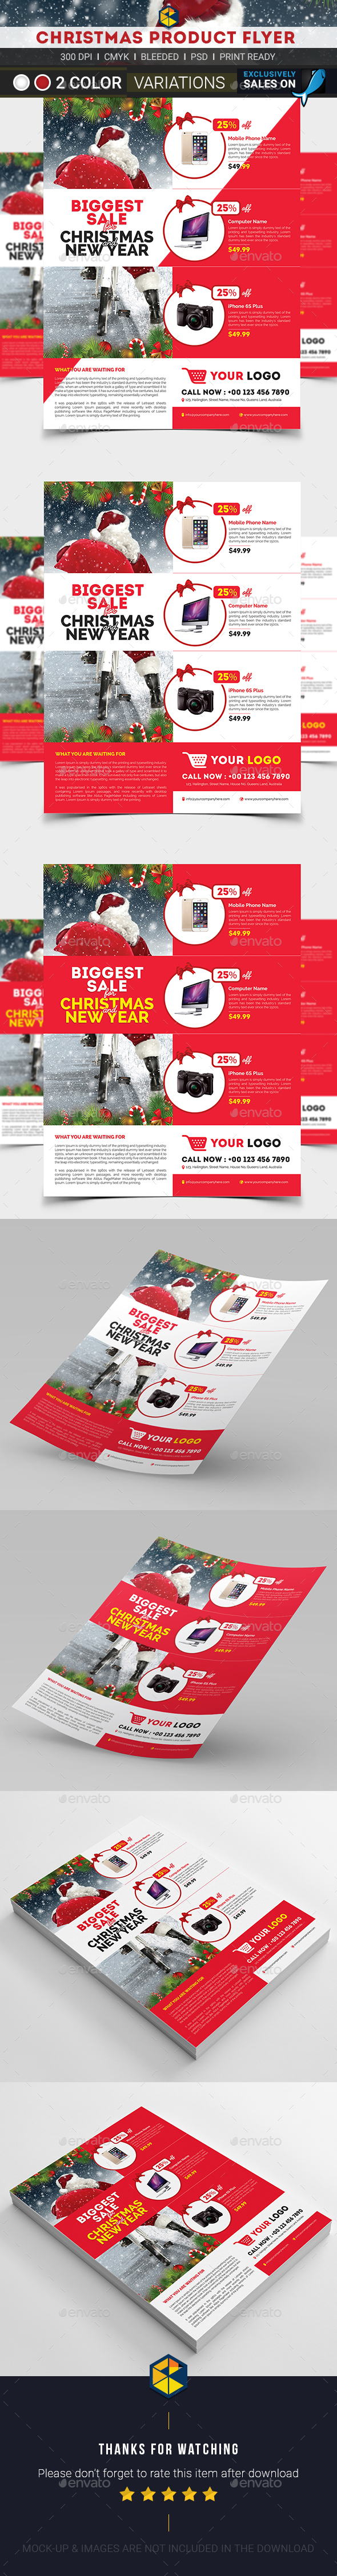 christmas product flyer templates banner flyer christmas product flyer templates